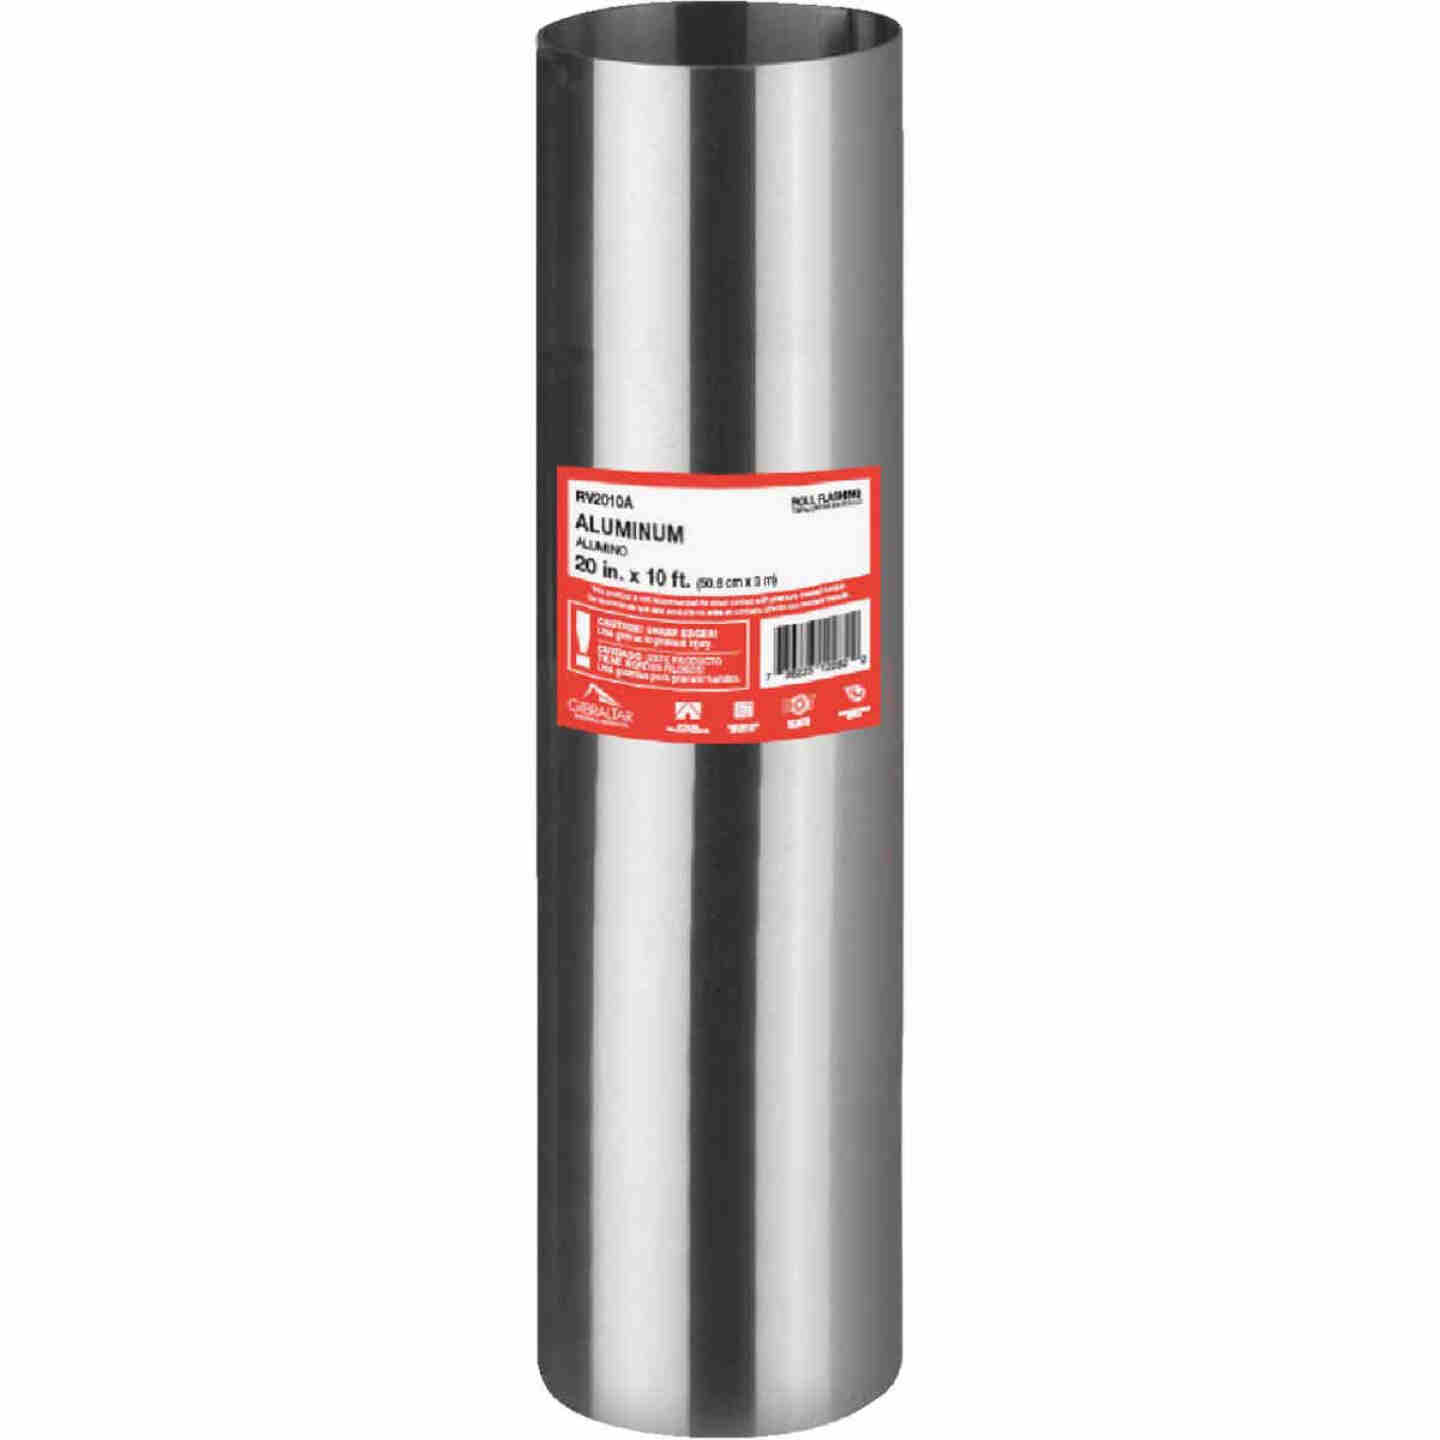 NorWesco 20 In. x 10 Ft. Mill Aluminum Roll Valley Flashing Image 1